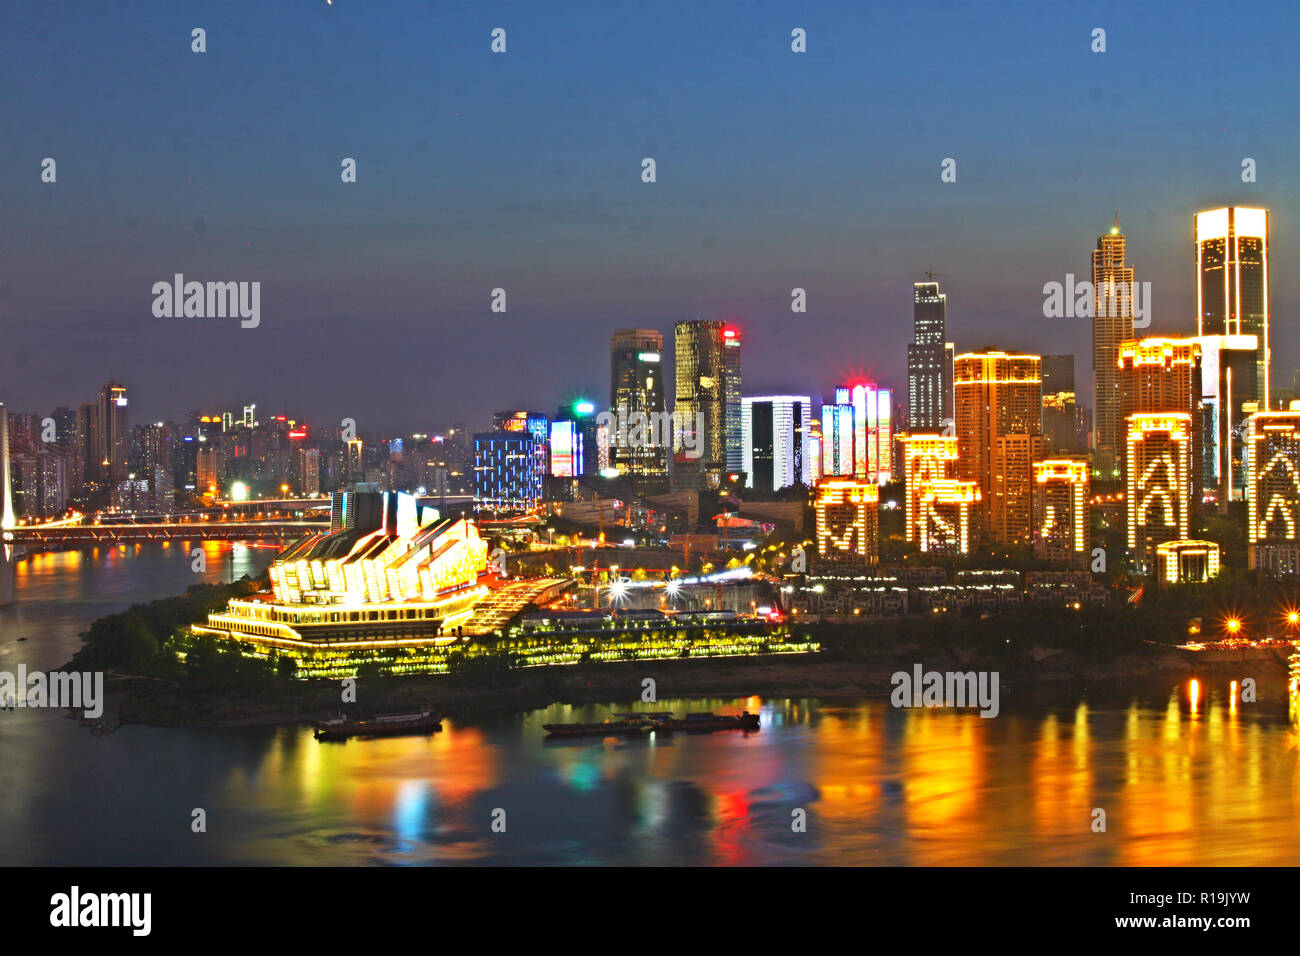 China Map River Stock Photos & China Map River Stock Images - Page 2 ...